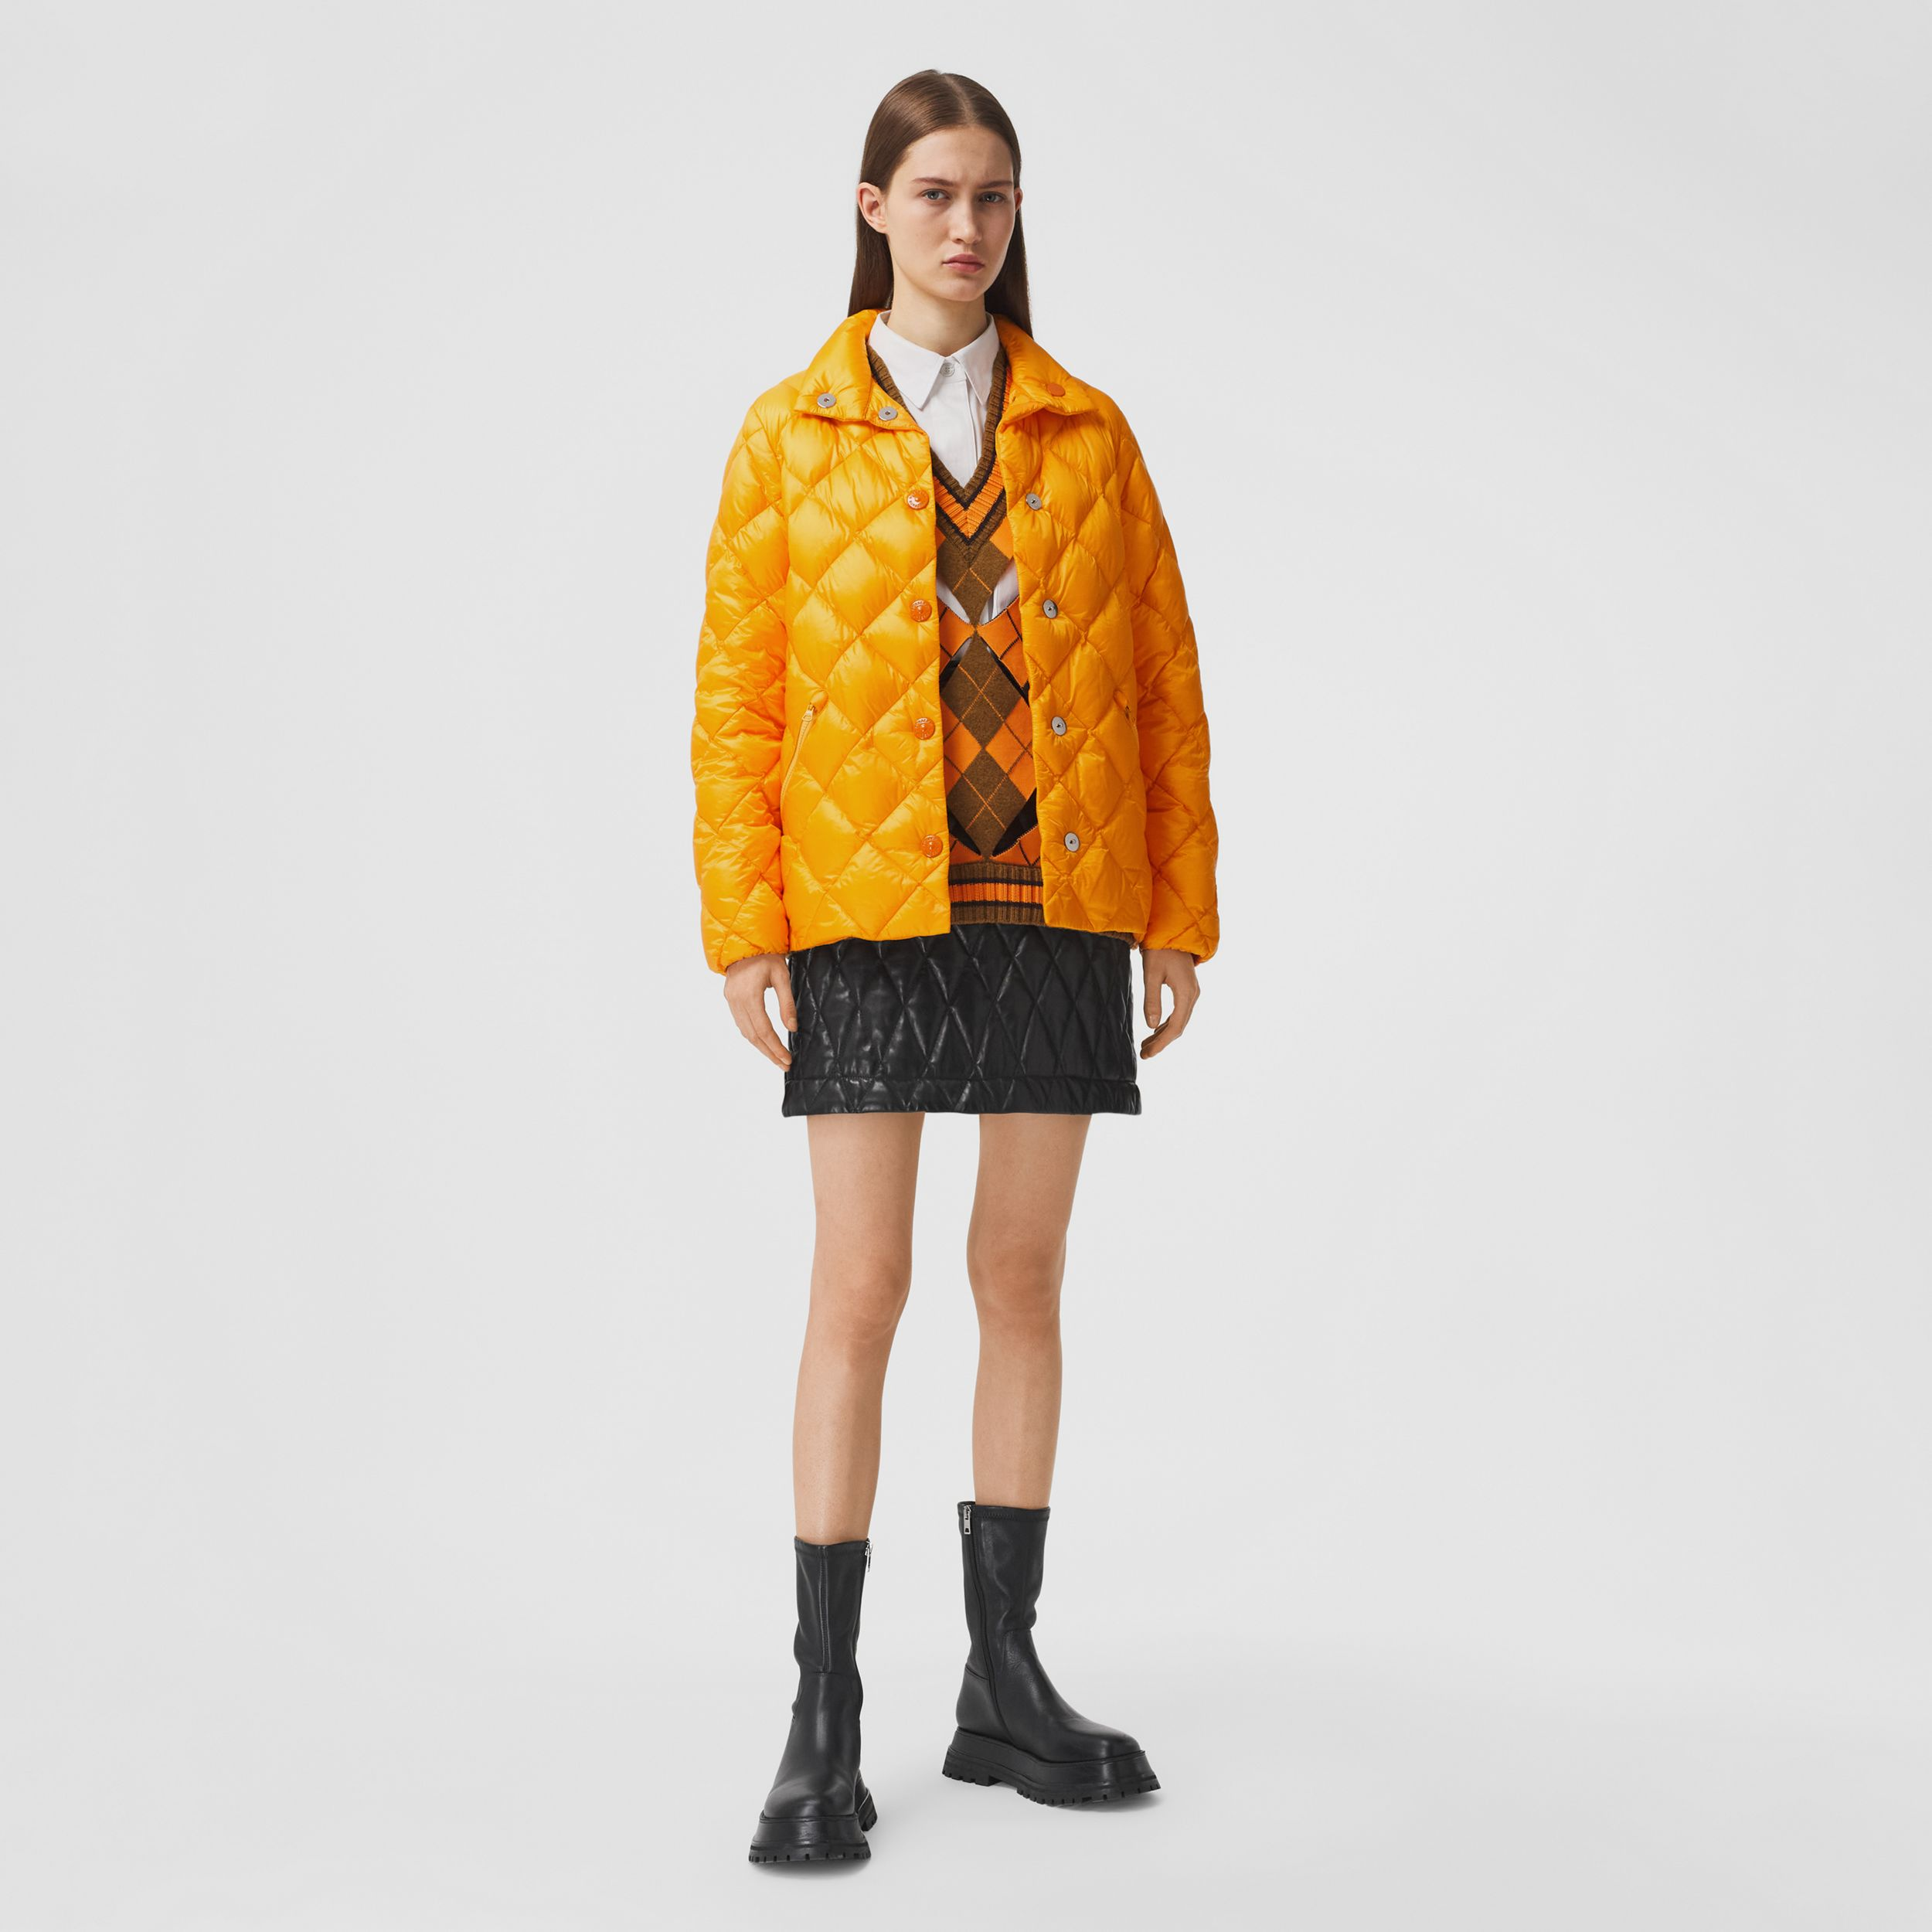 Diamond Quilted Down-filled Jacket in Citrus Orange - Women | Burberry Australia - 1